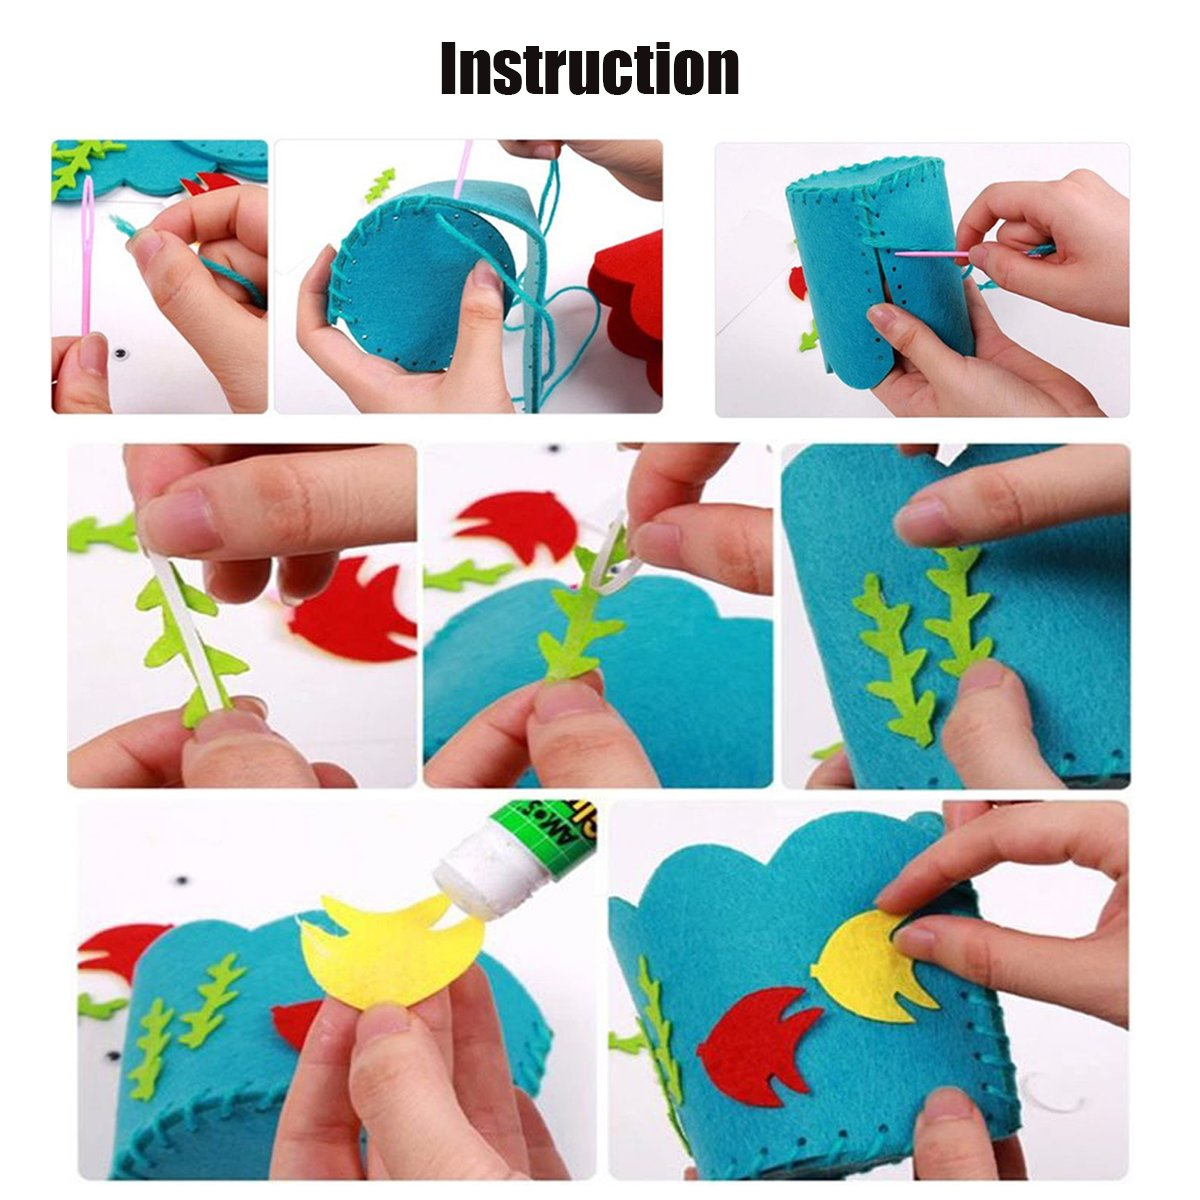 qiaoniuniu Sewing Kit for Kids DIY Art Craft Hand Stitch Play Set with Safety Needle Thread Harmless Felt for Beginner Children Girls Boy Great Gifts for christmas4 Package Handbags